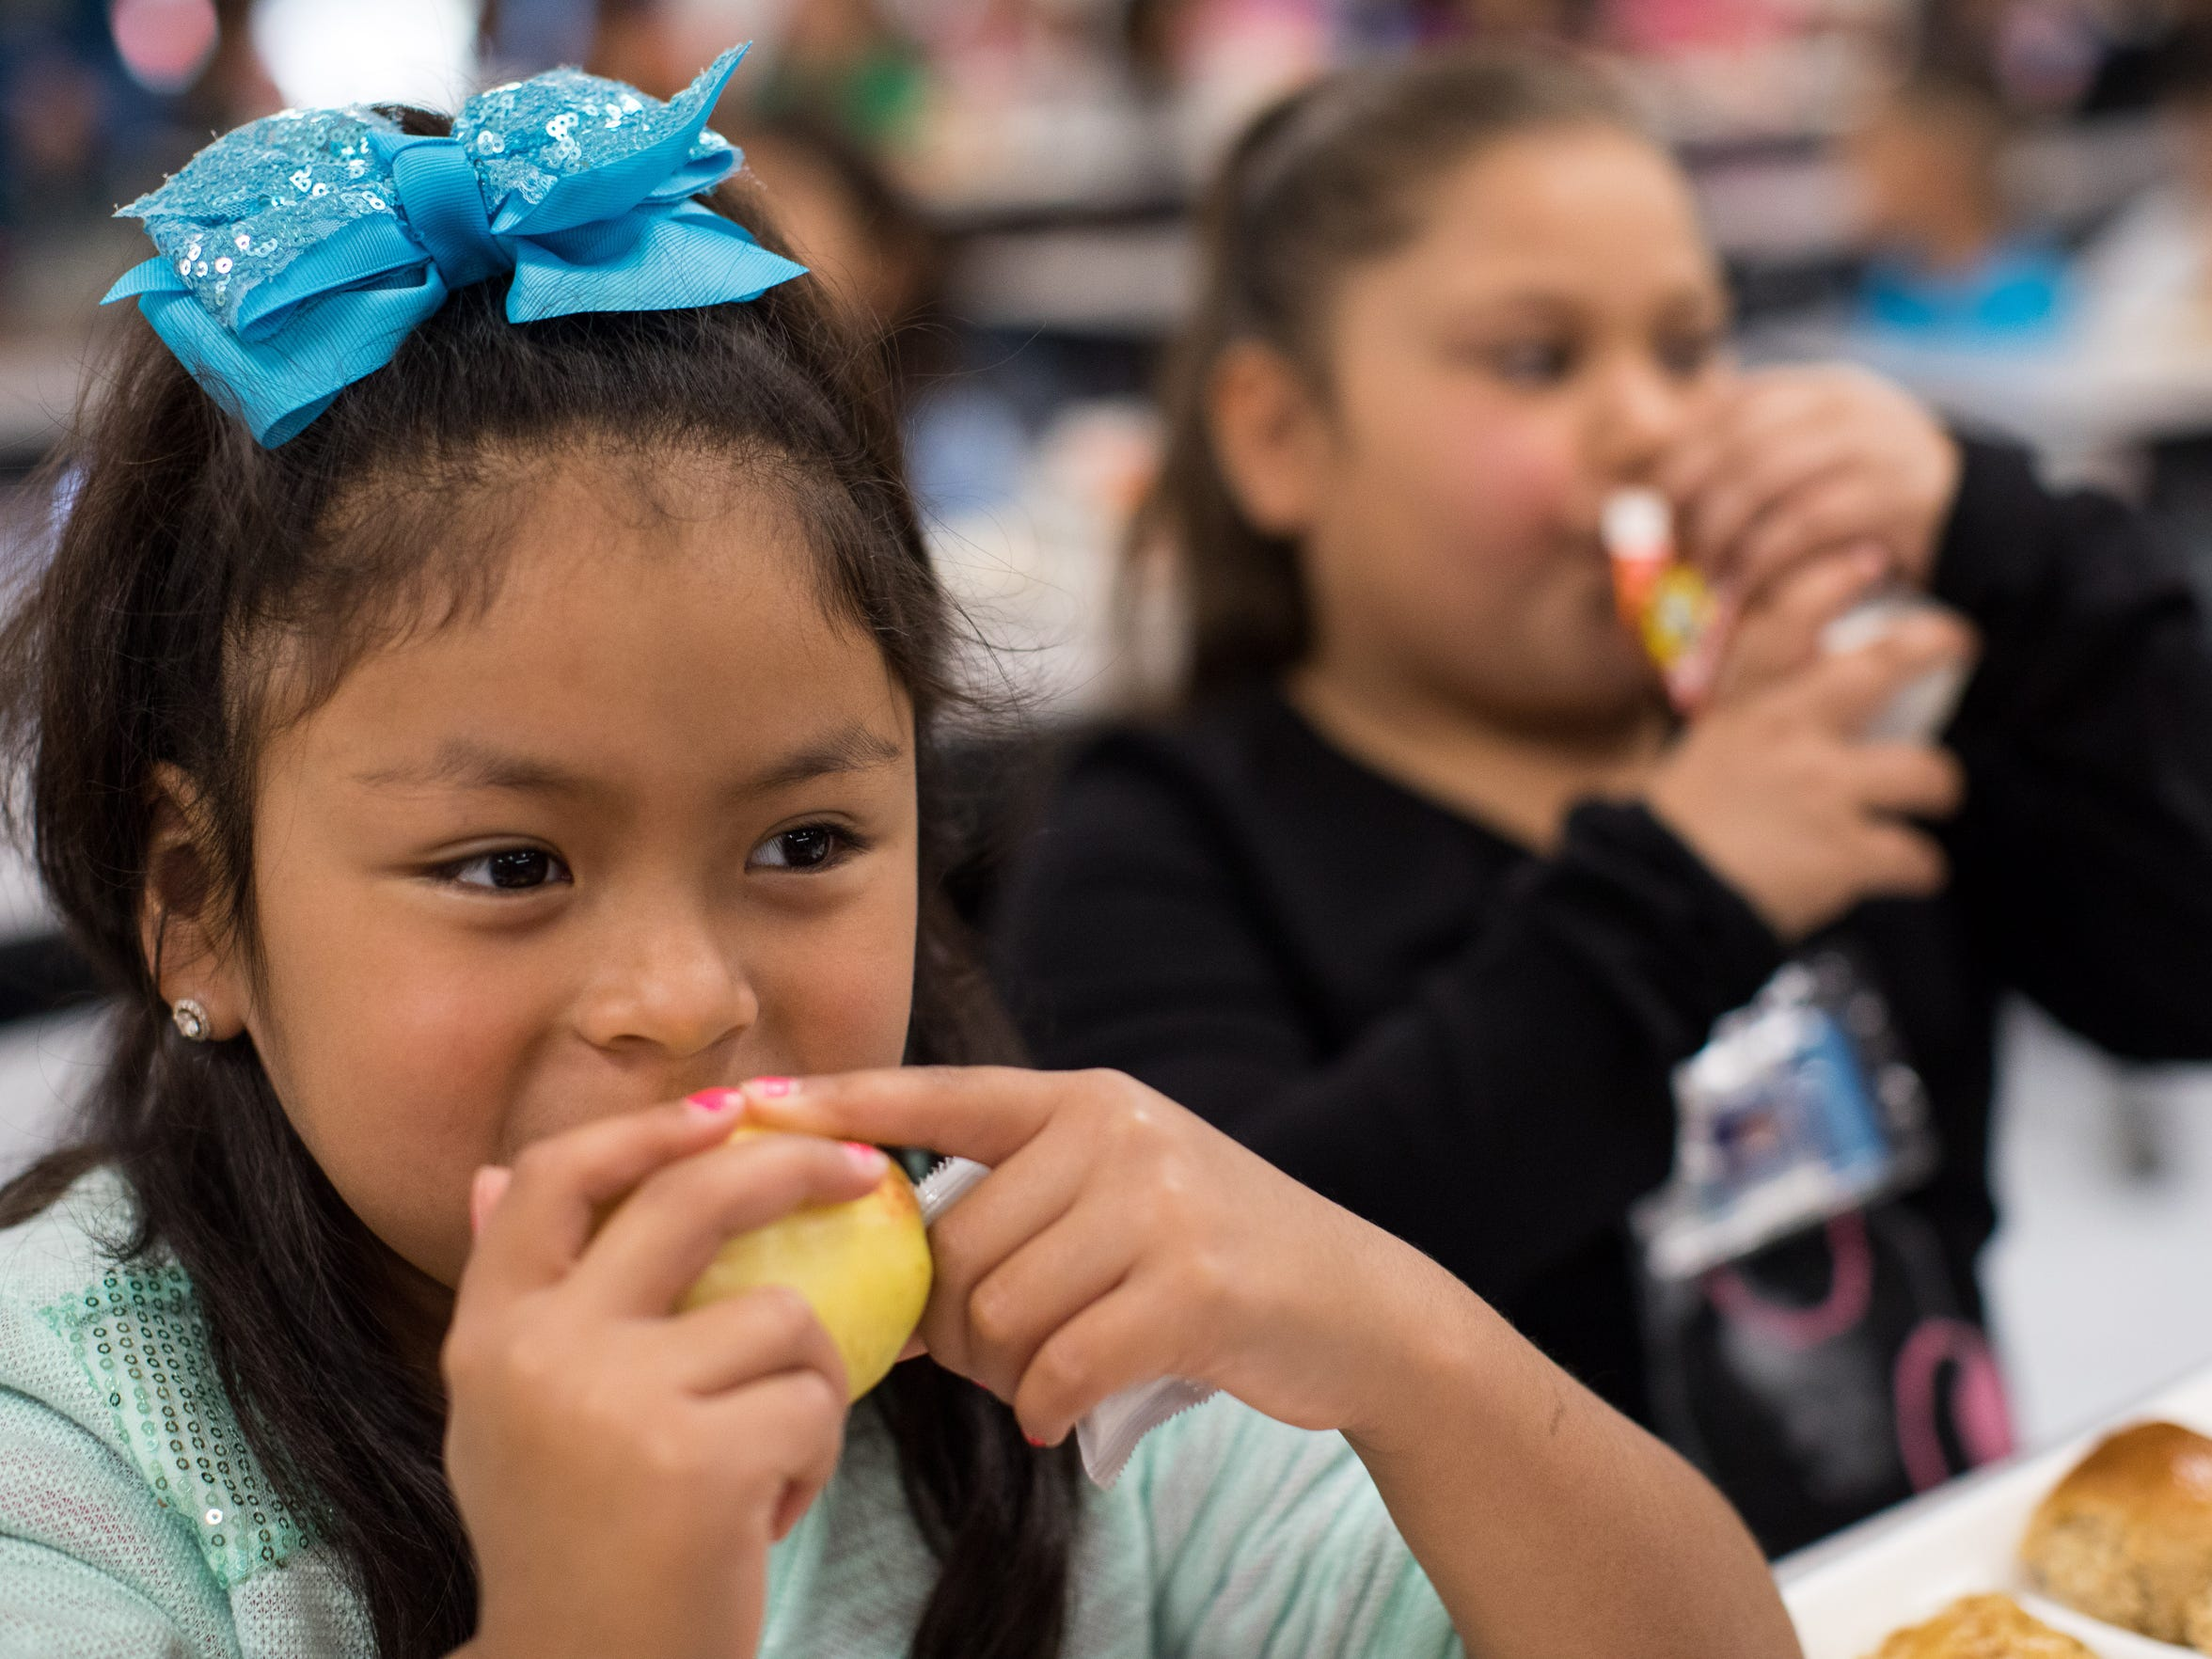 In Texas, more than 4.2 million people are struggling with hunger and of them, more than 1.6 million are children, according to the national organization.